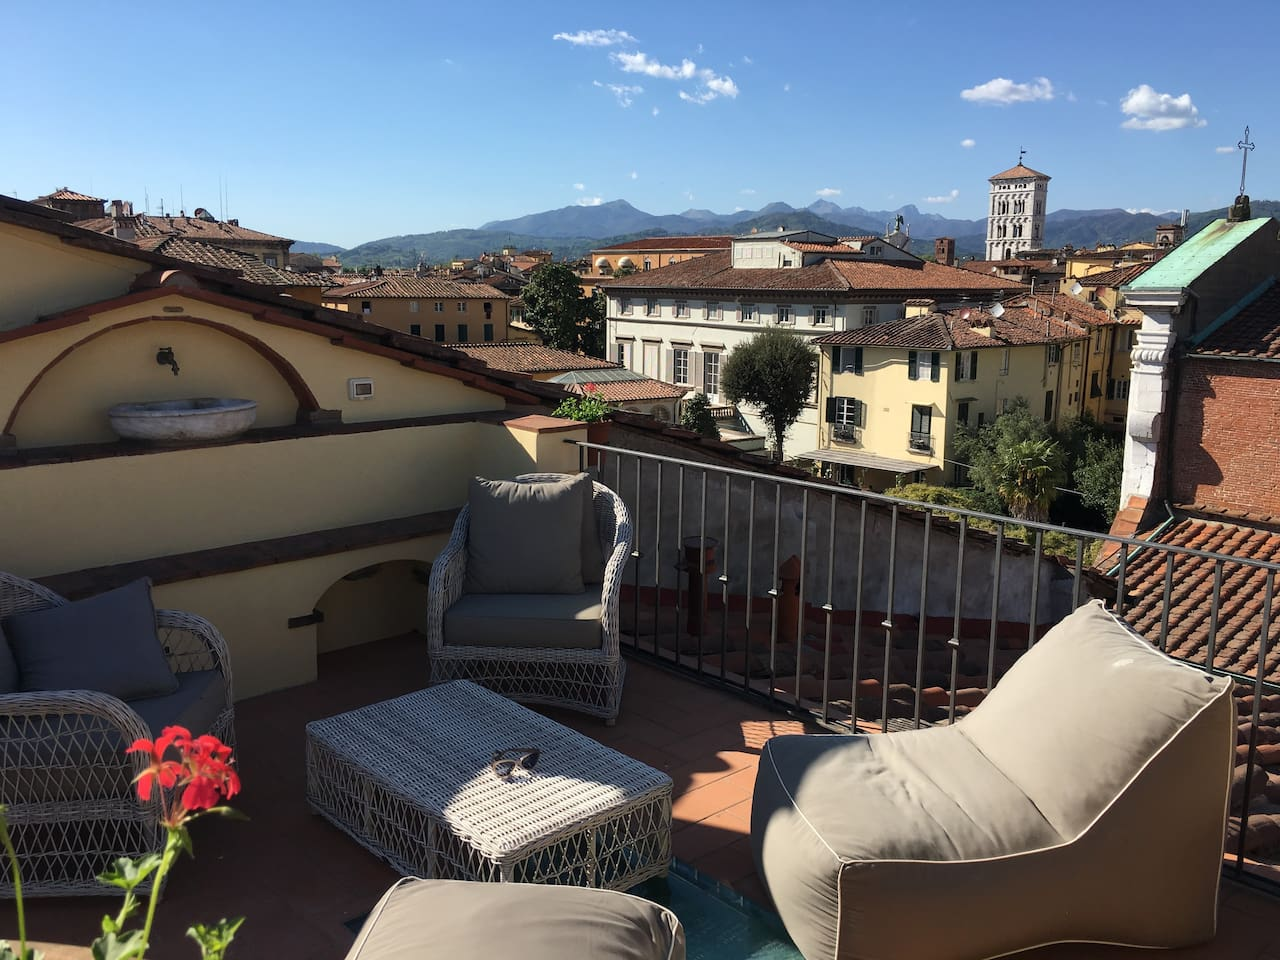 360 panoramic views over Lucca's rooftops and the Tuscan countryside